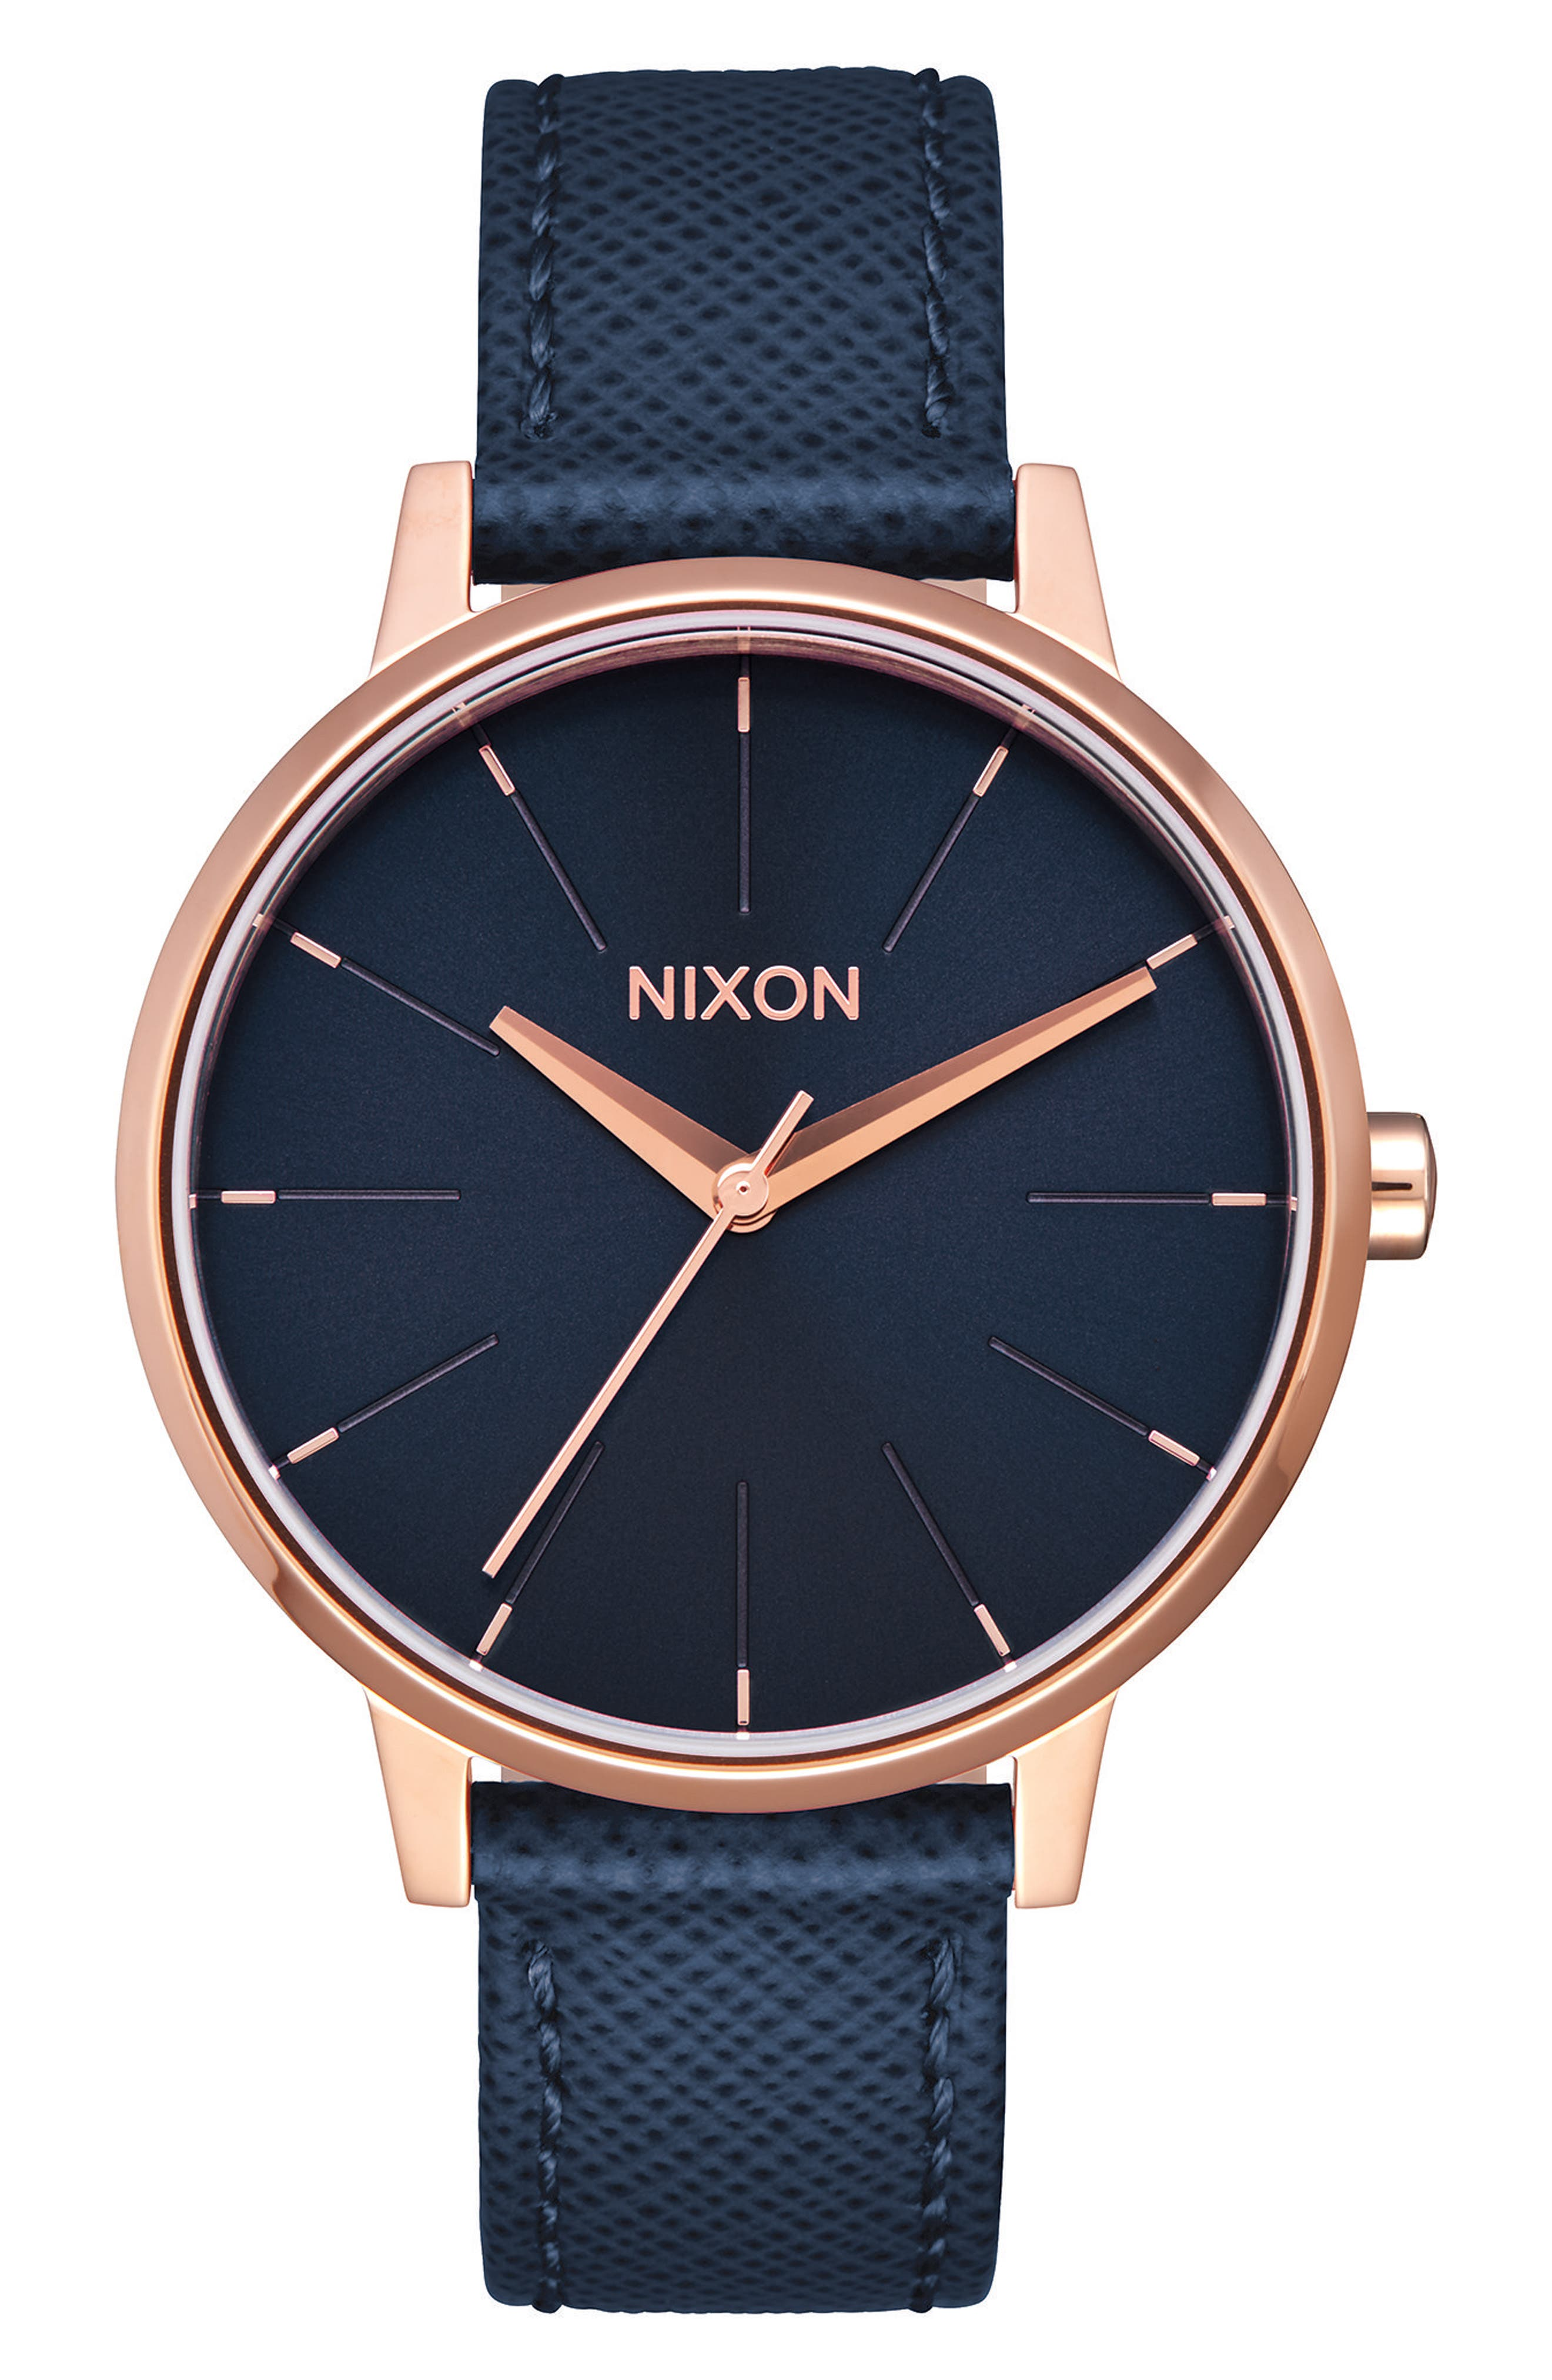 NIXON The Kensington Leather Strap Watch, 37mm